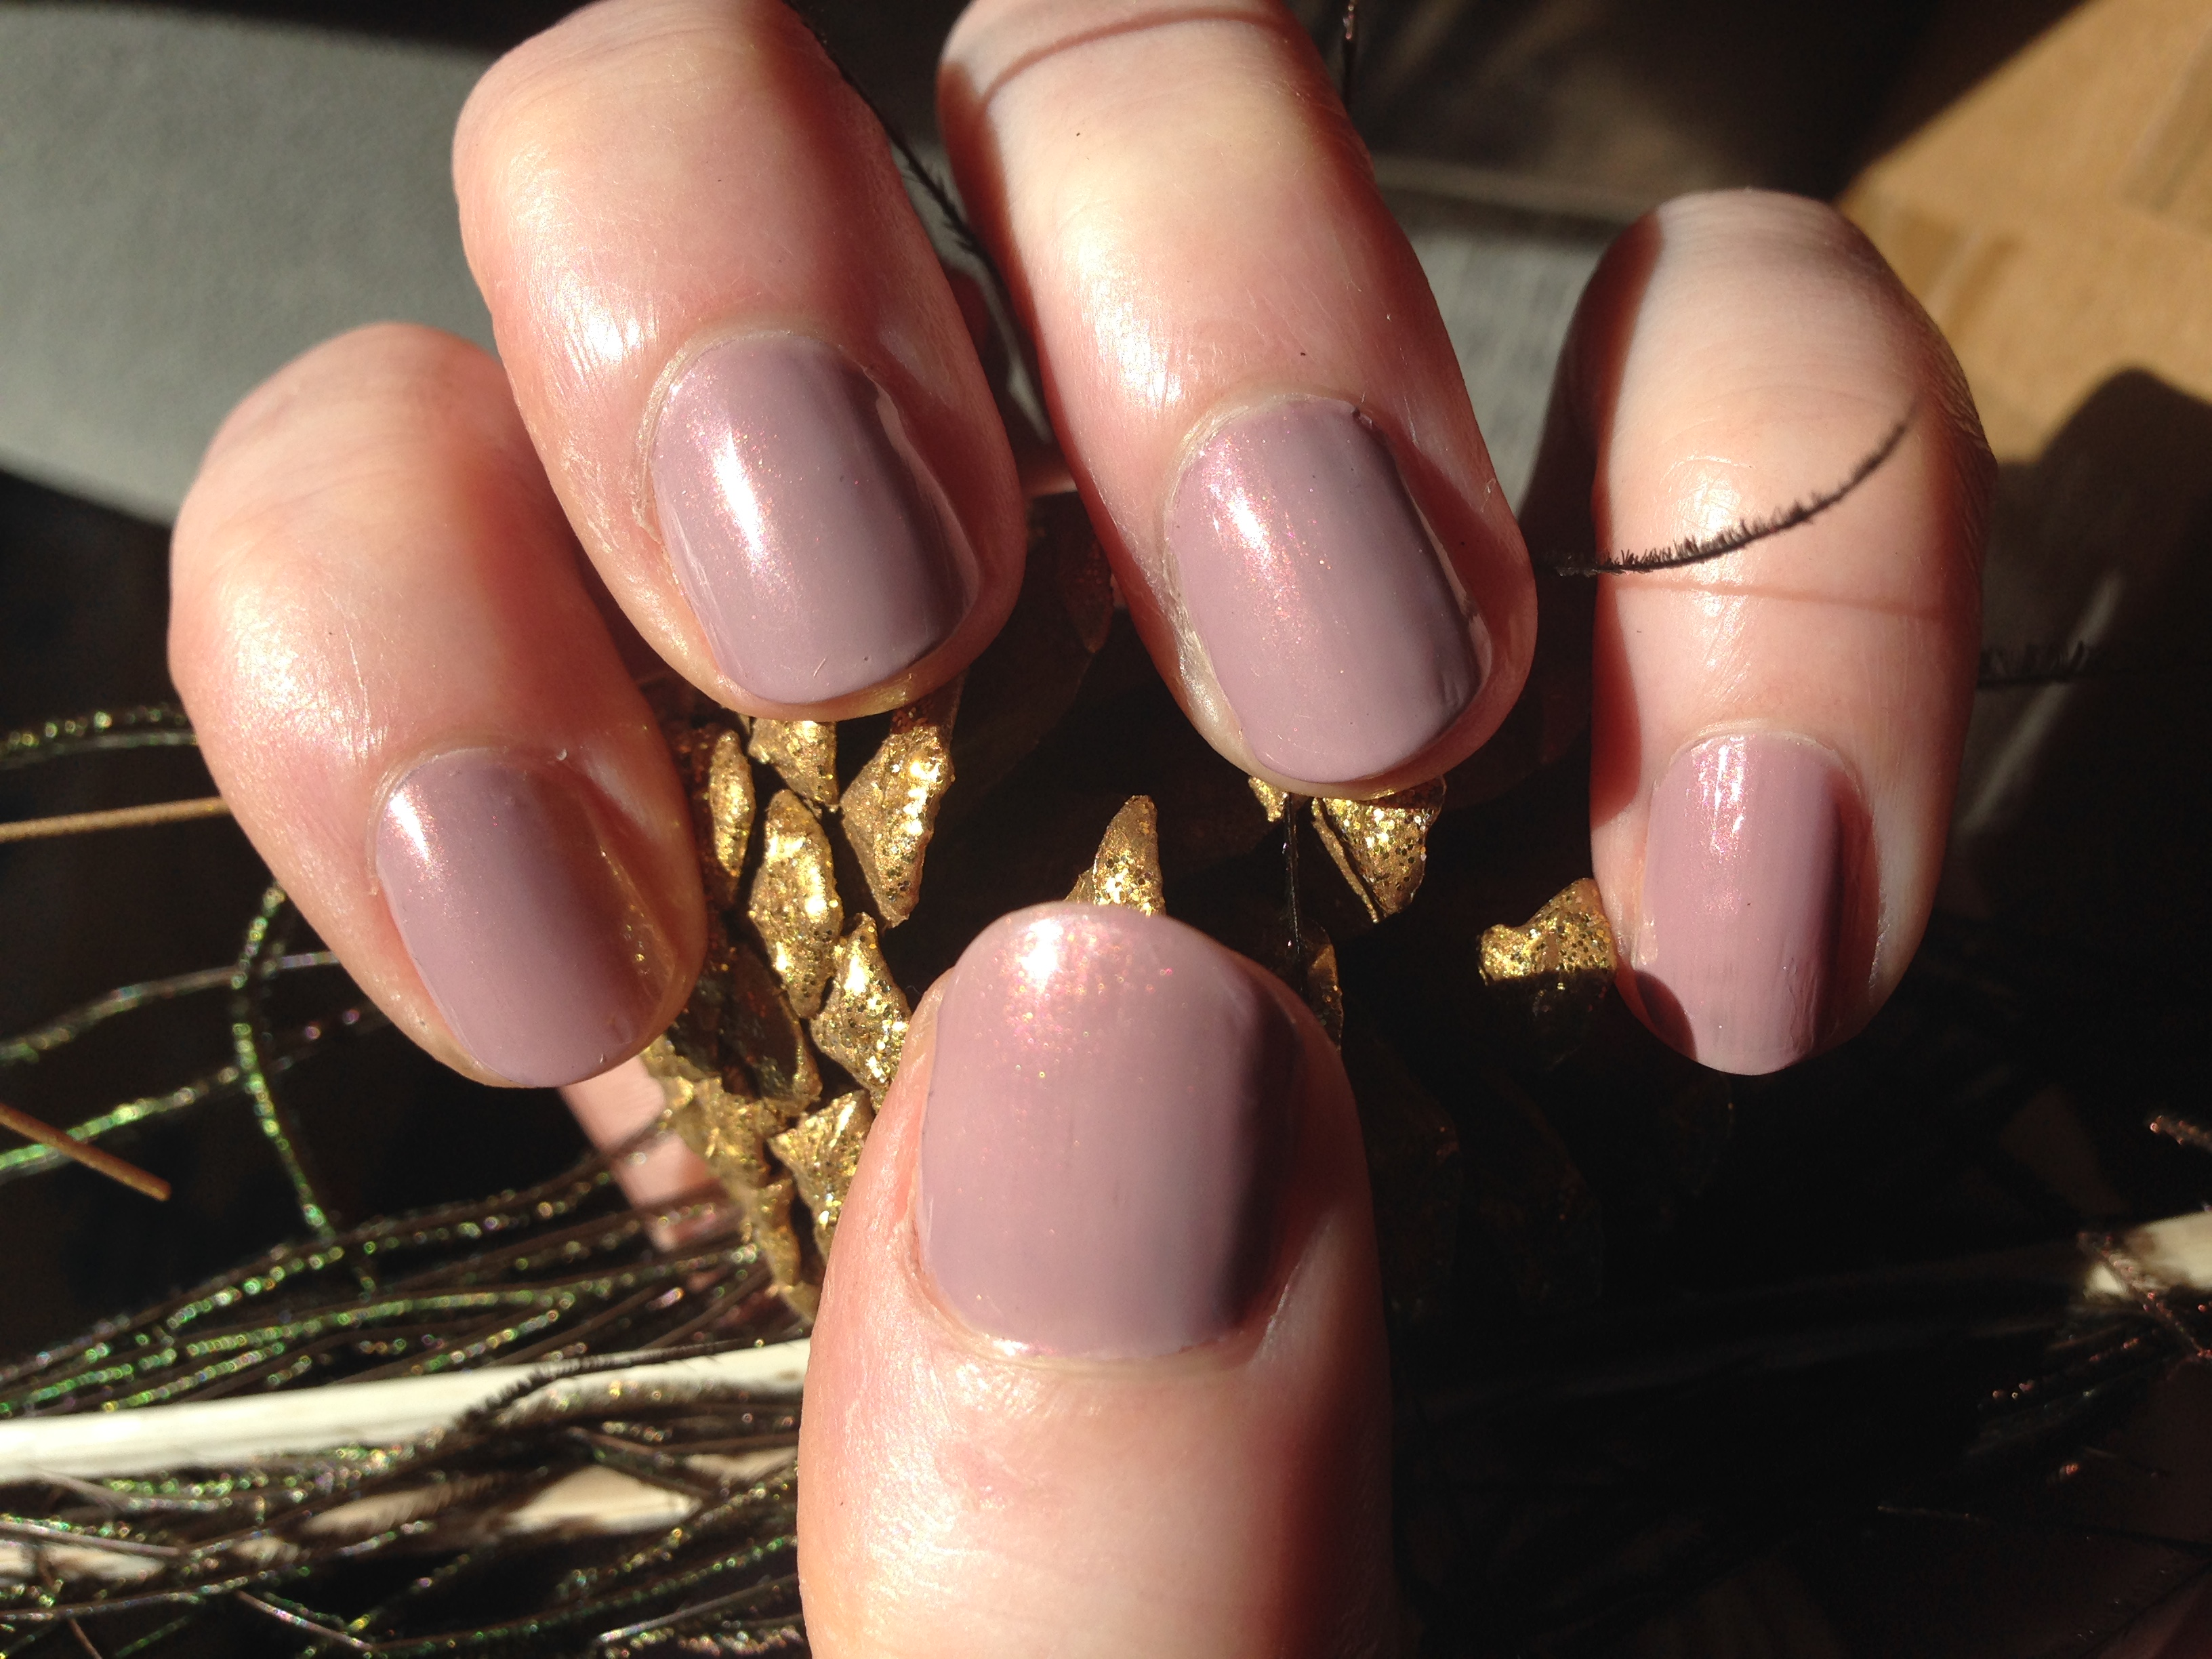 Re: Show me your nails! - Page 81 - Beauty Insider Community